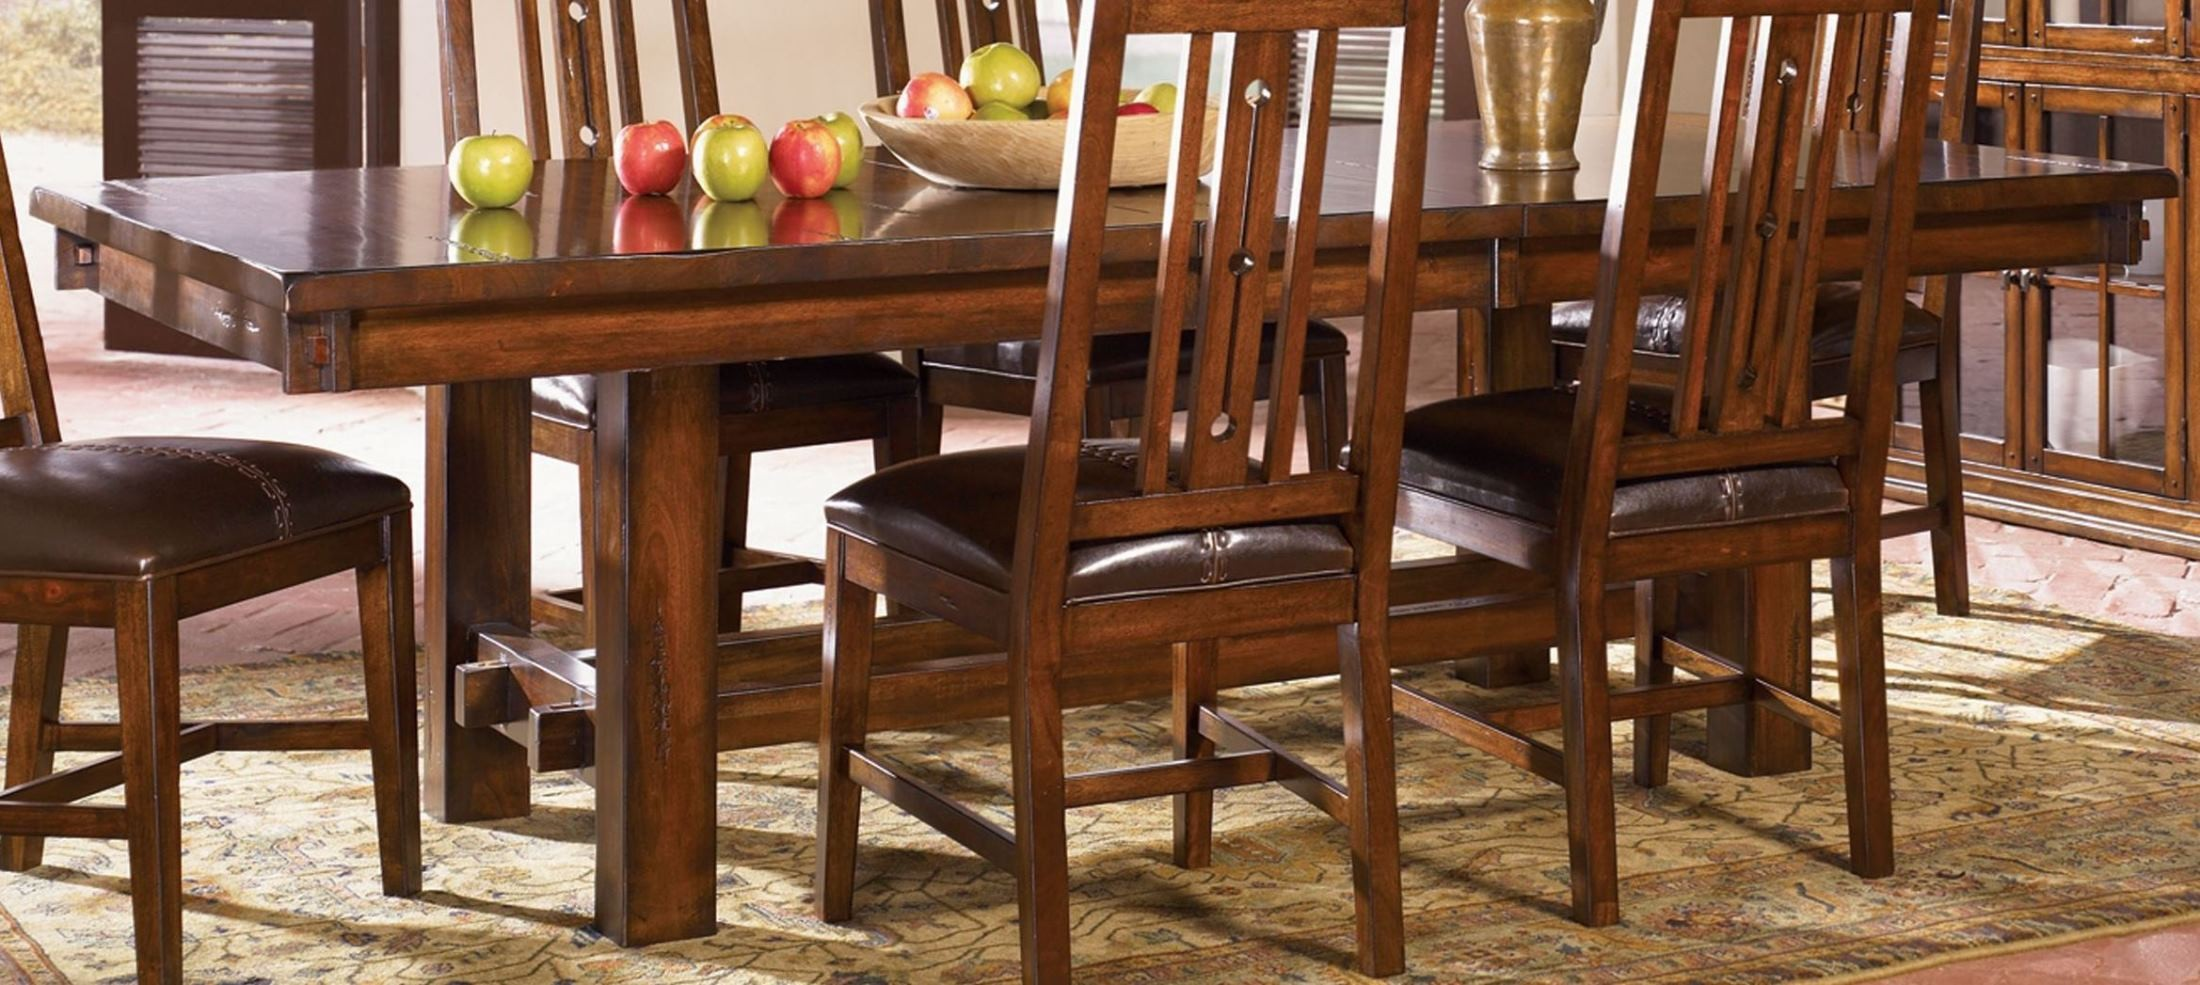 Mesa rustica 92 aged mahogany extendable trestle dining for Mesas rusticas